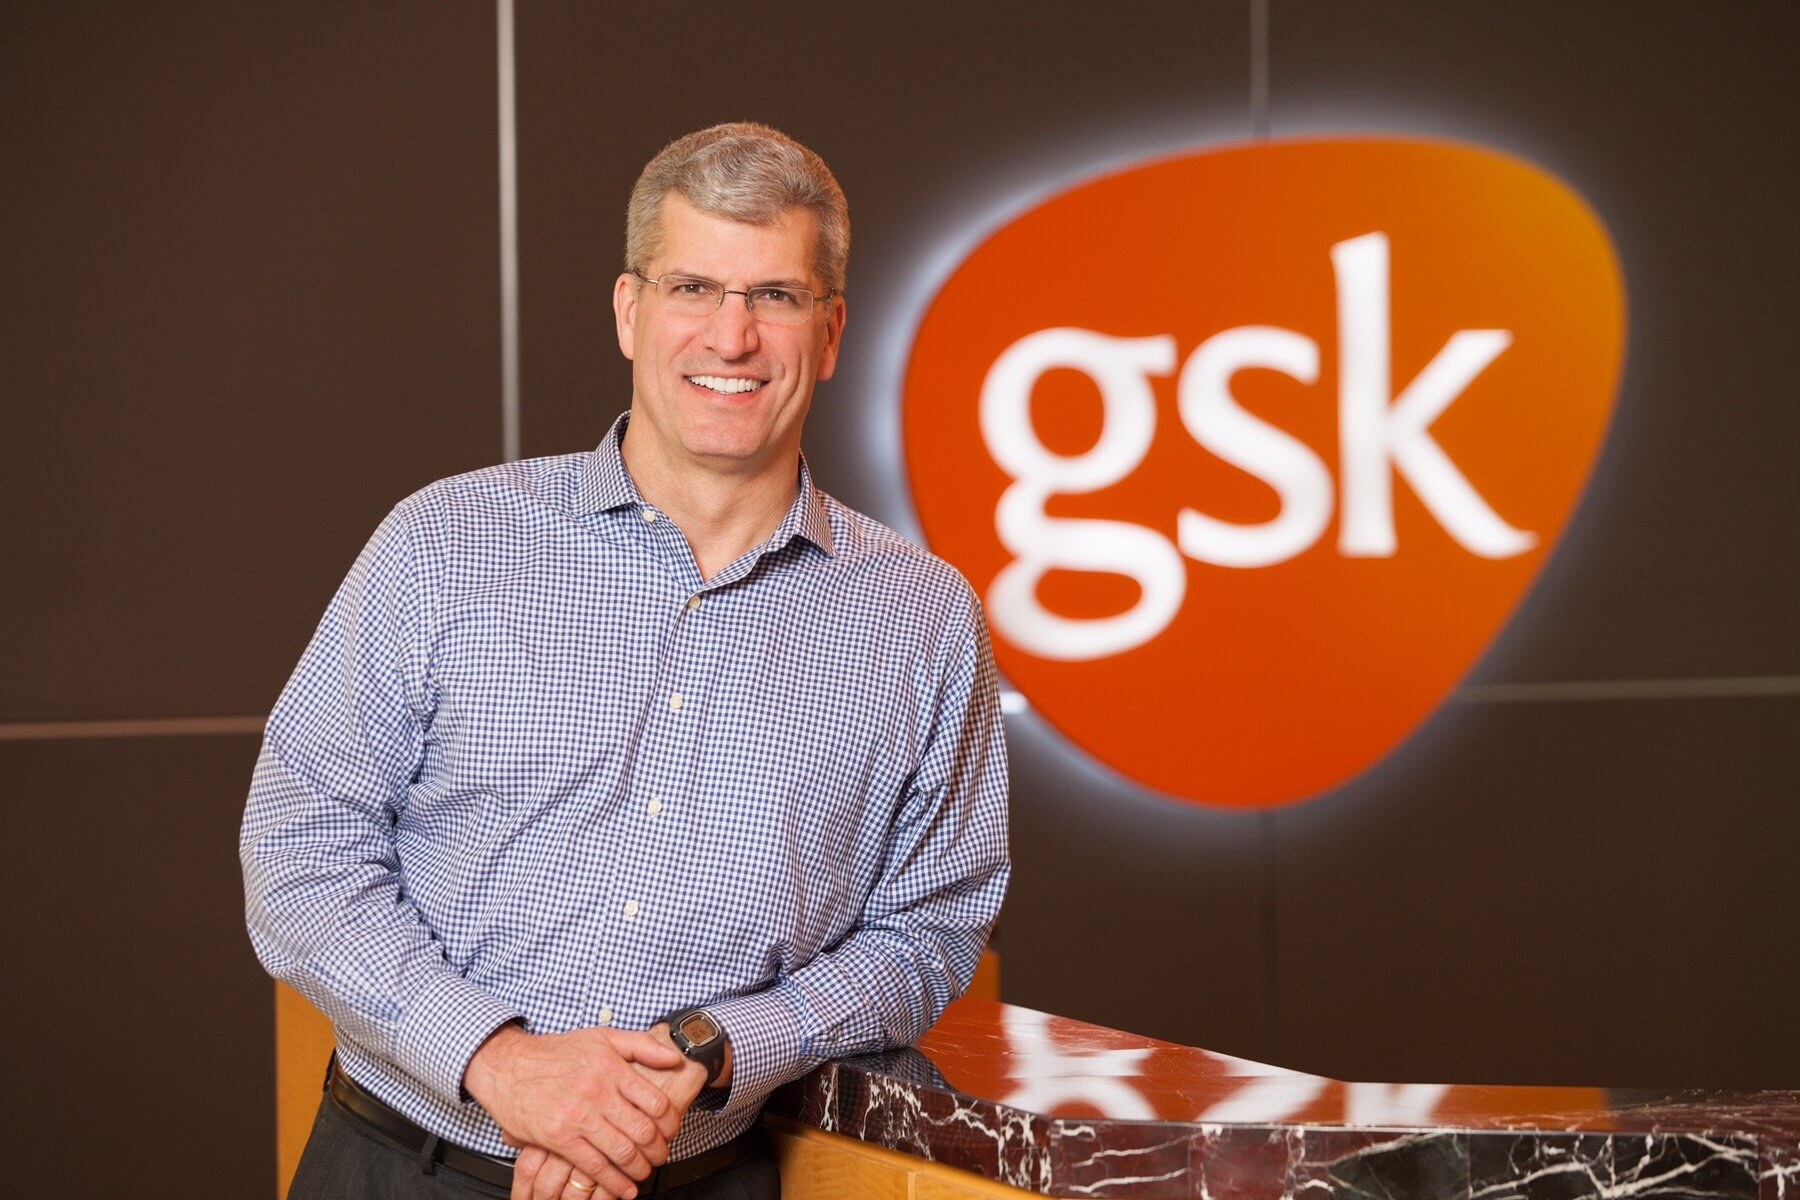 GSK's Jack Bailey: NCBiotech Roots Launch High-Profile